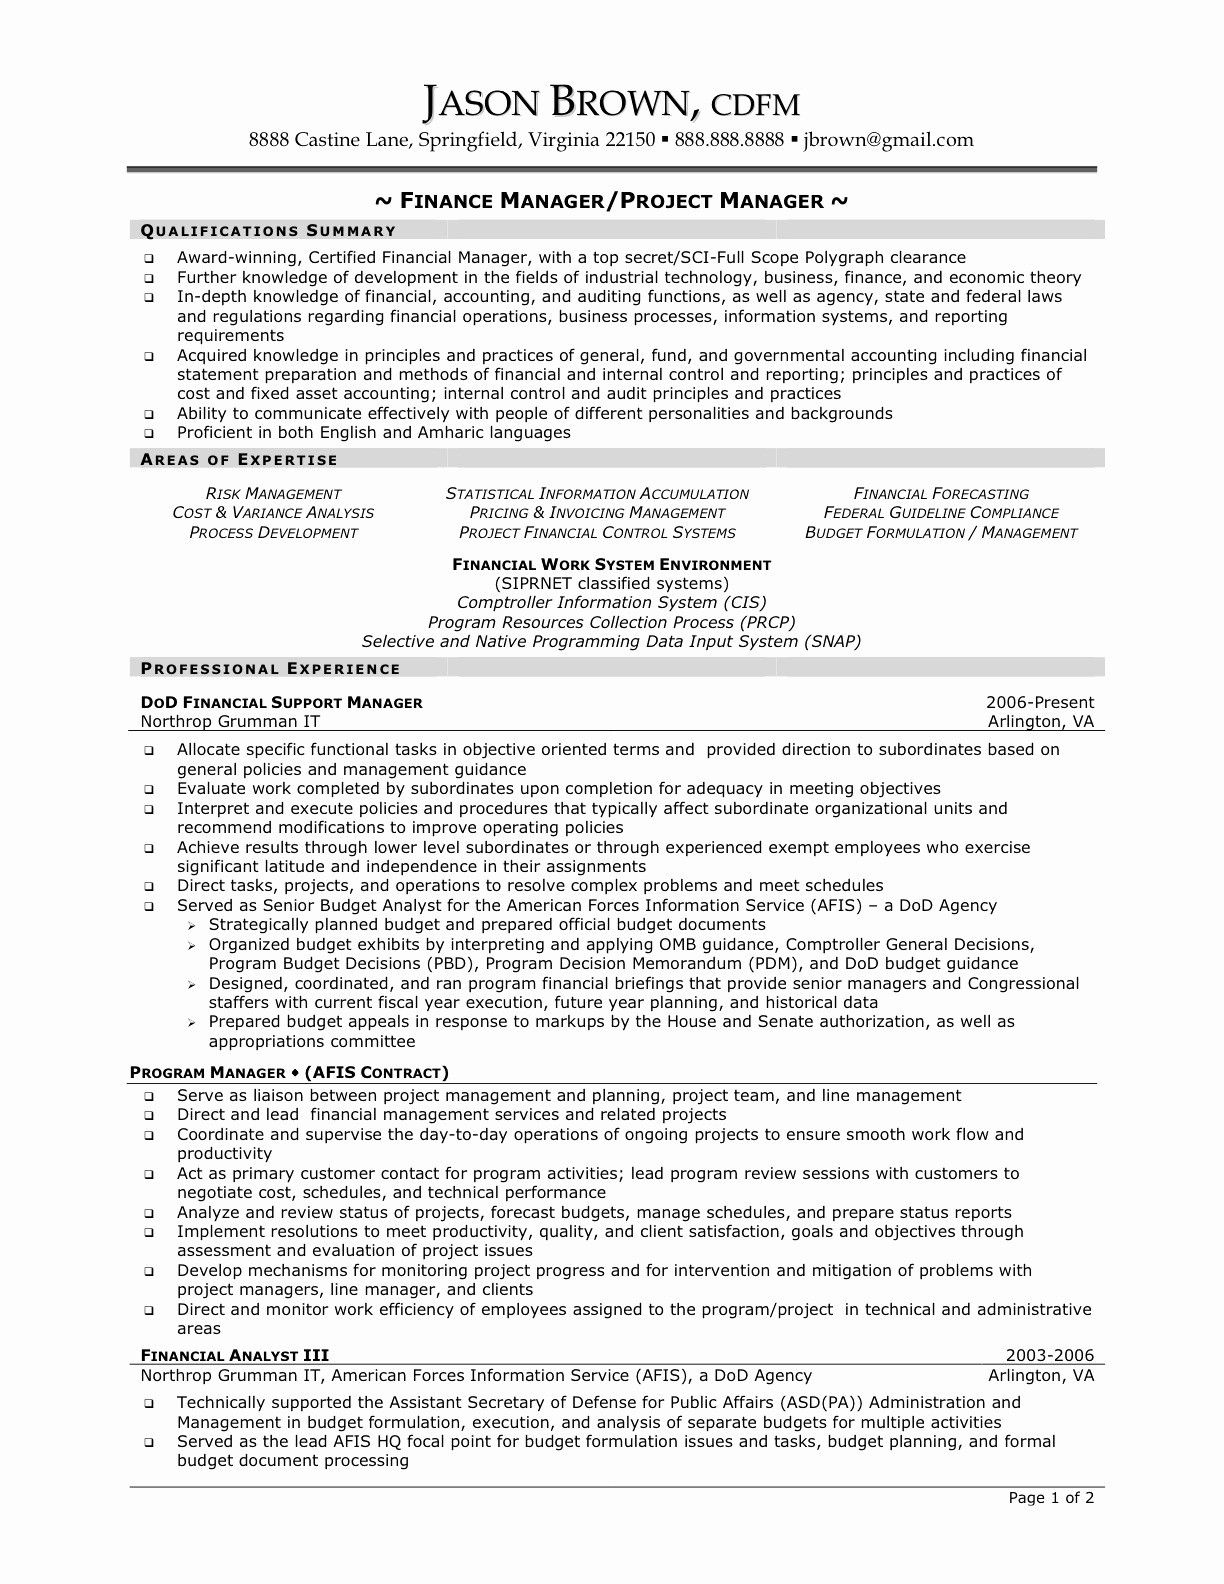 Project Manager Resume Keywords